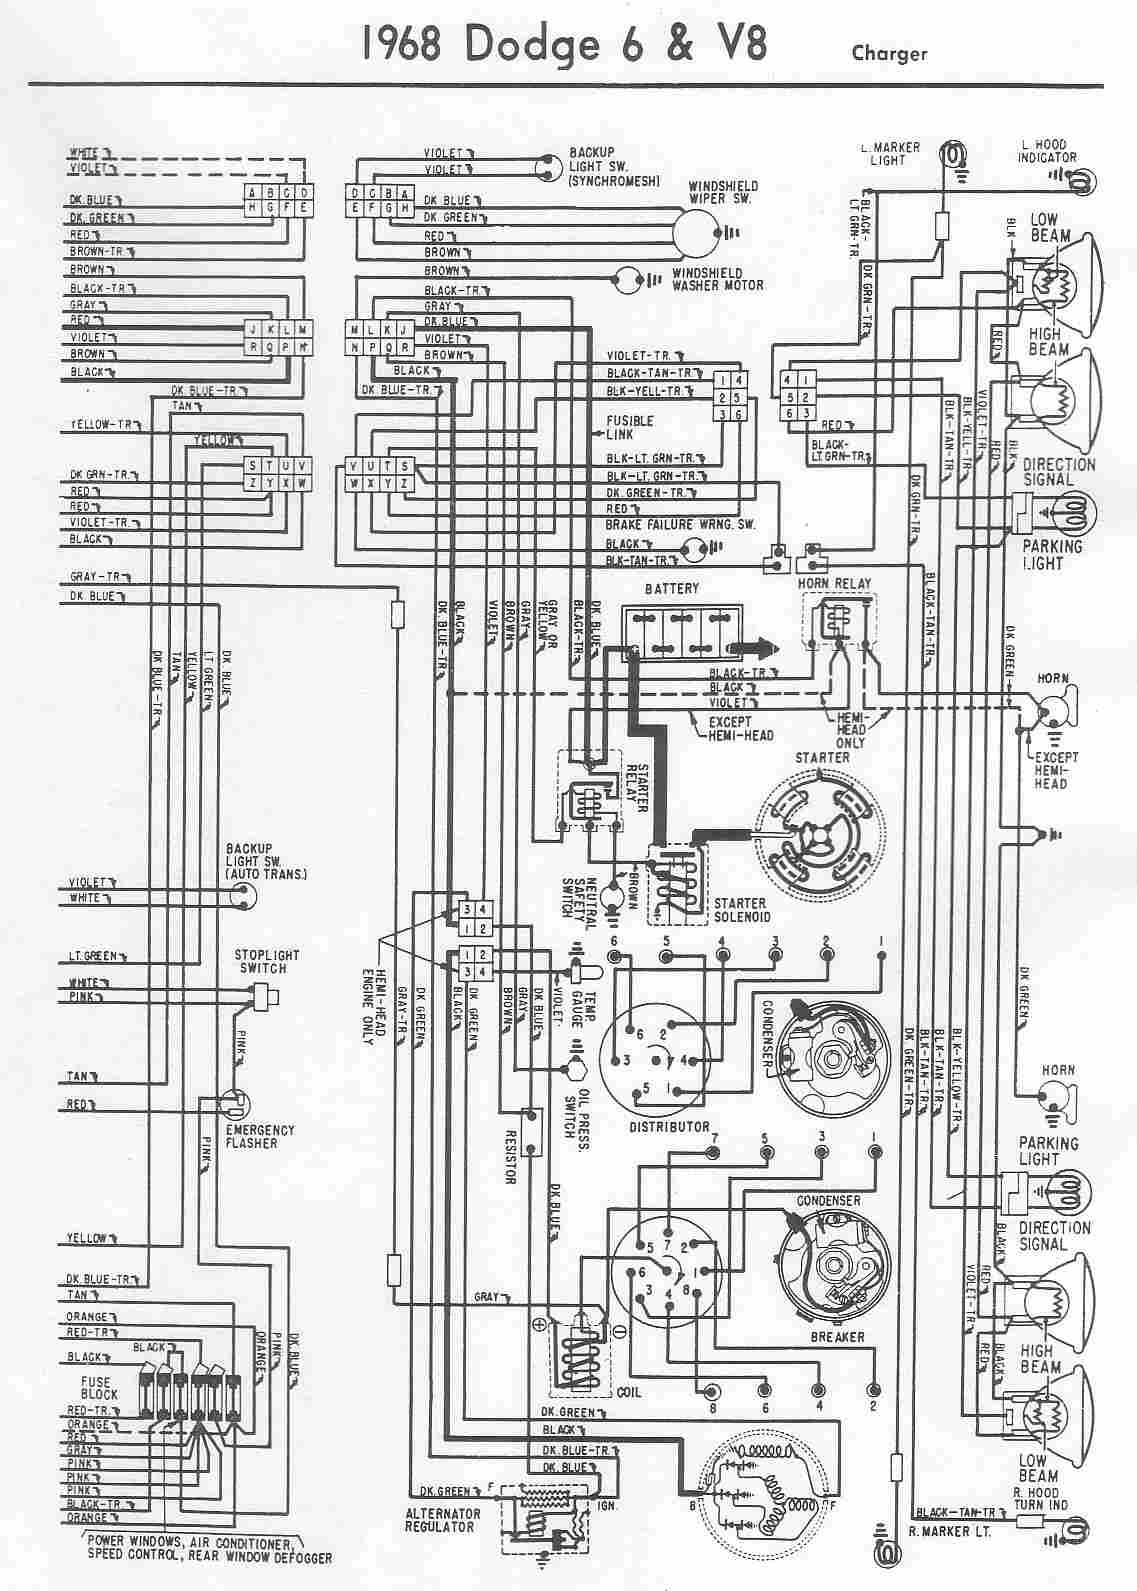 chrysler 300 starter wiring diagram 20 10 artatec automobile de u20222006 chrysler 300 starter wiring [ 1137 x 1591 Pixel ]